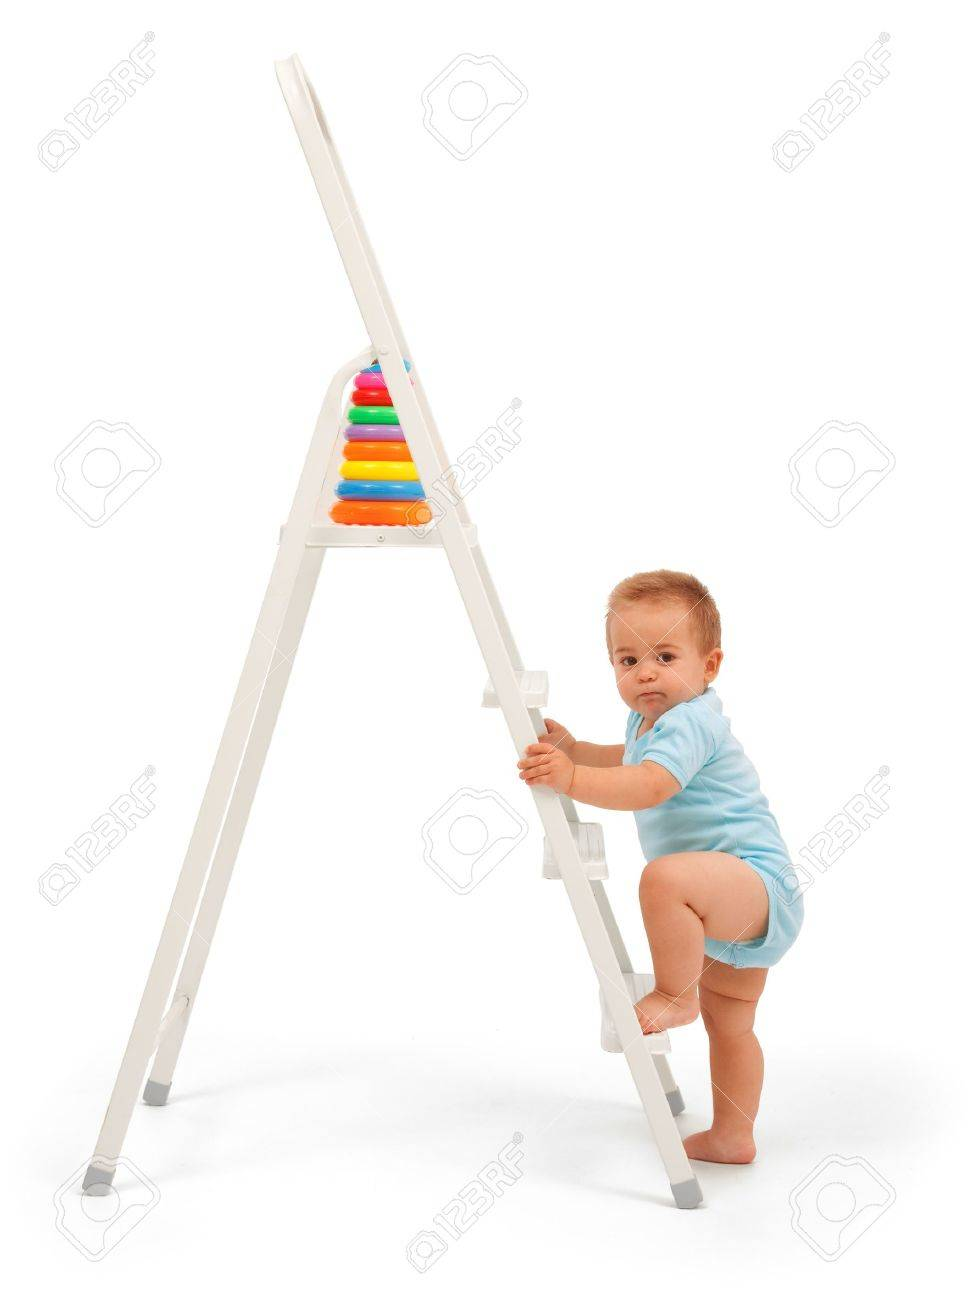 serious baby boy wants to reach the target walk up the ladder serious baby boy wants to reach the target walk up the ladder and get the